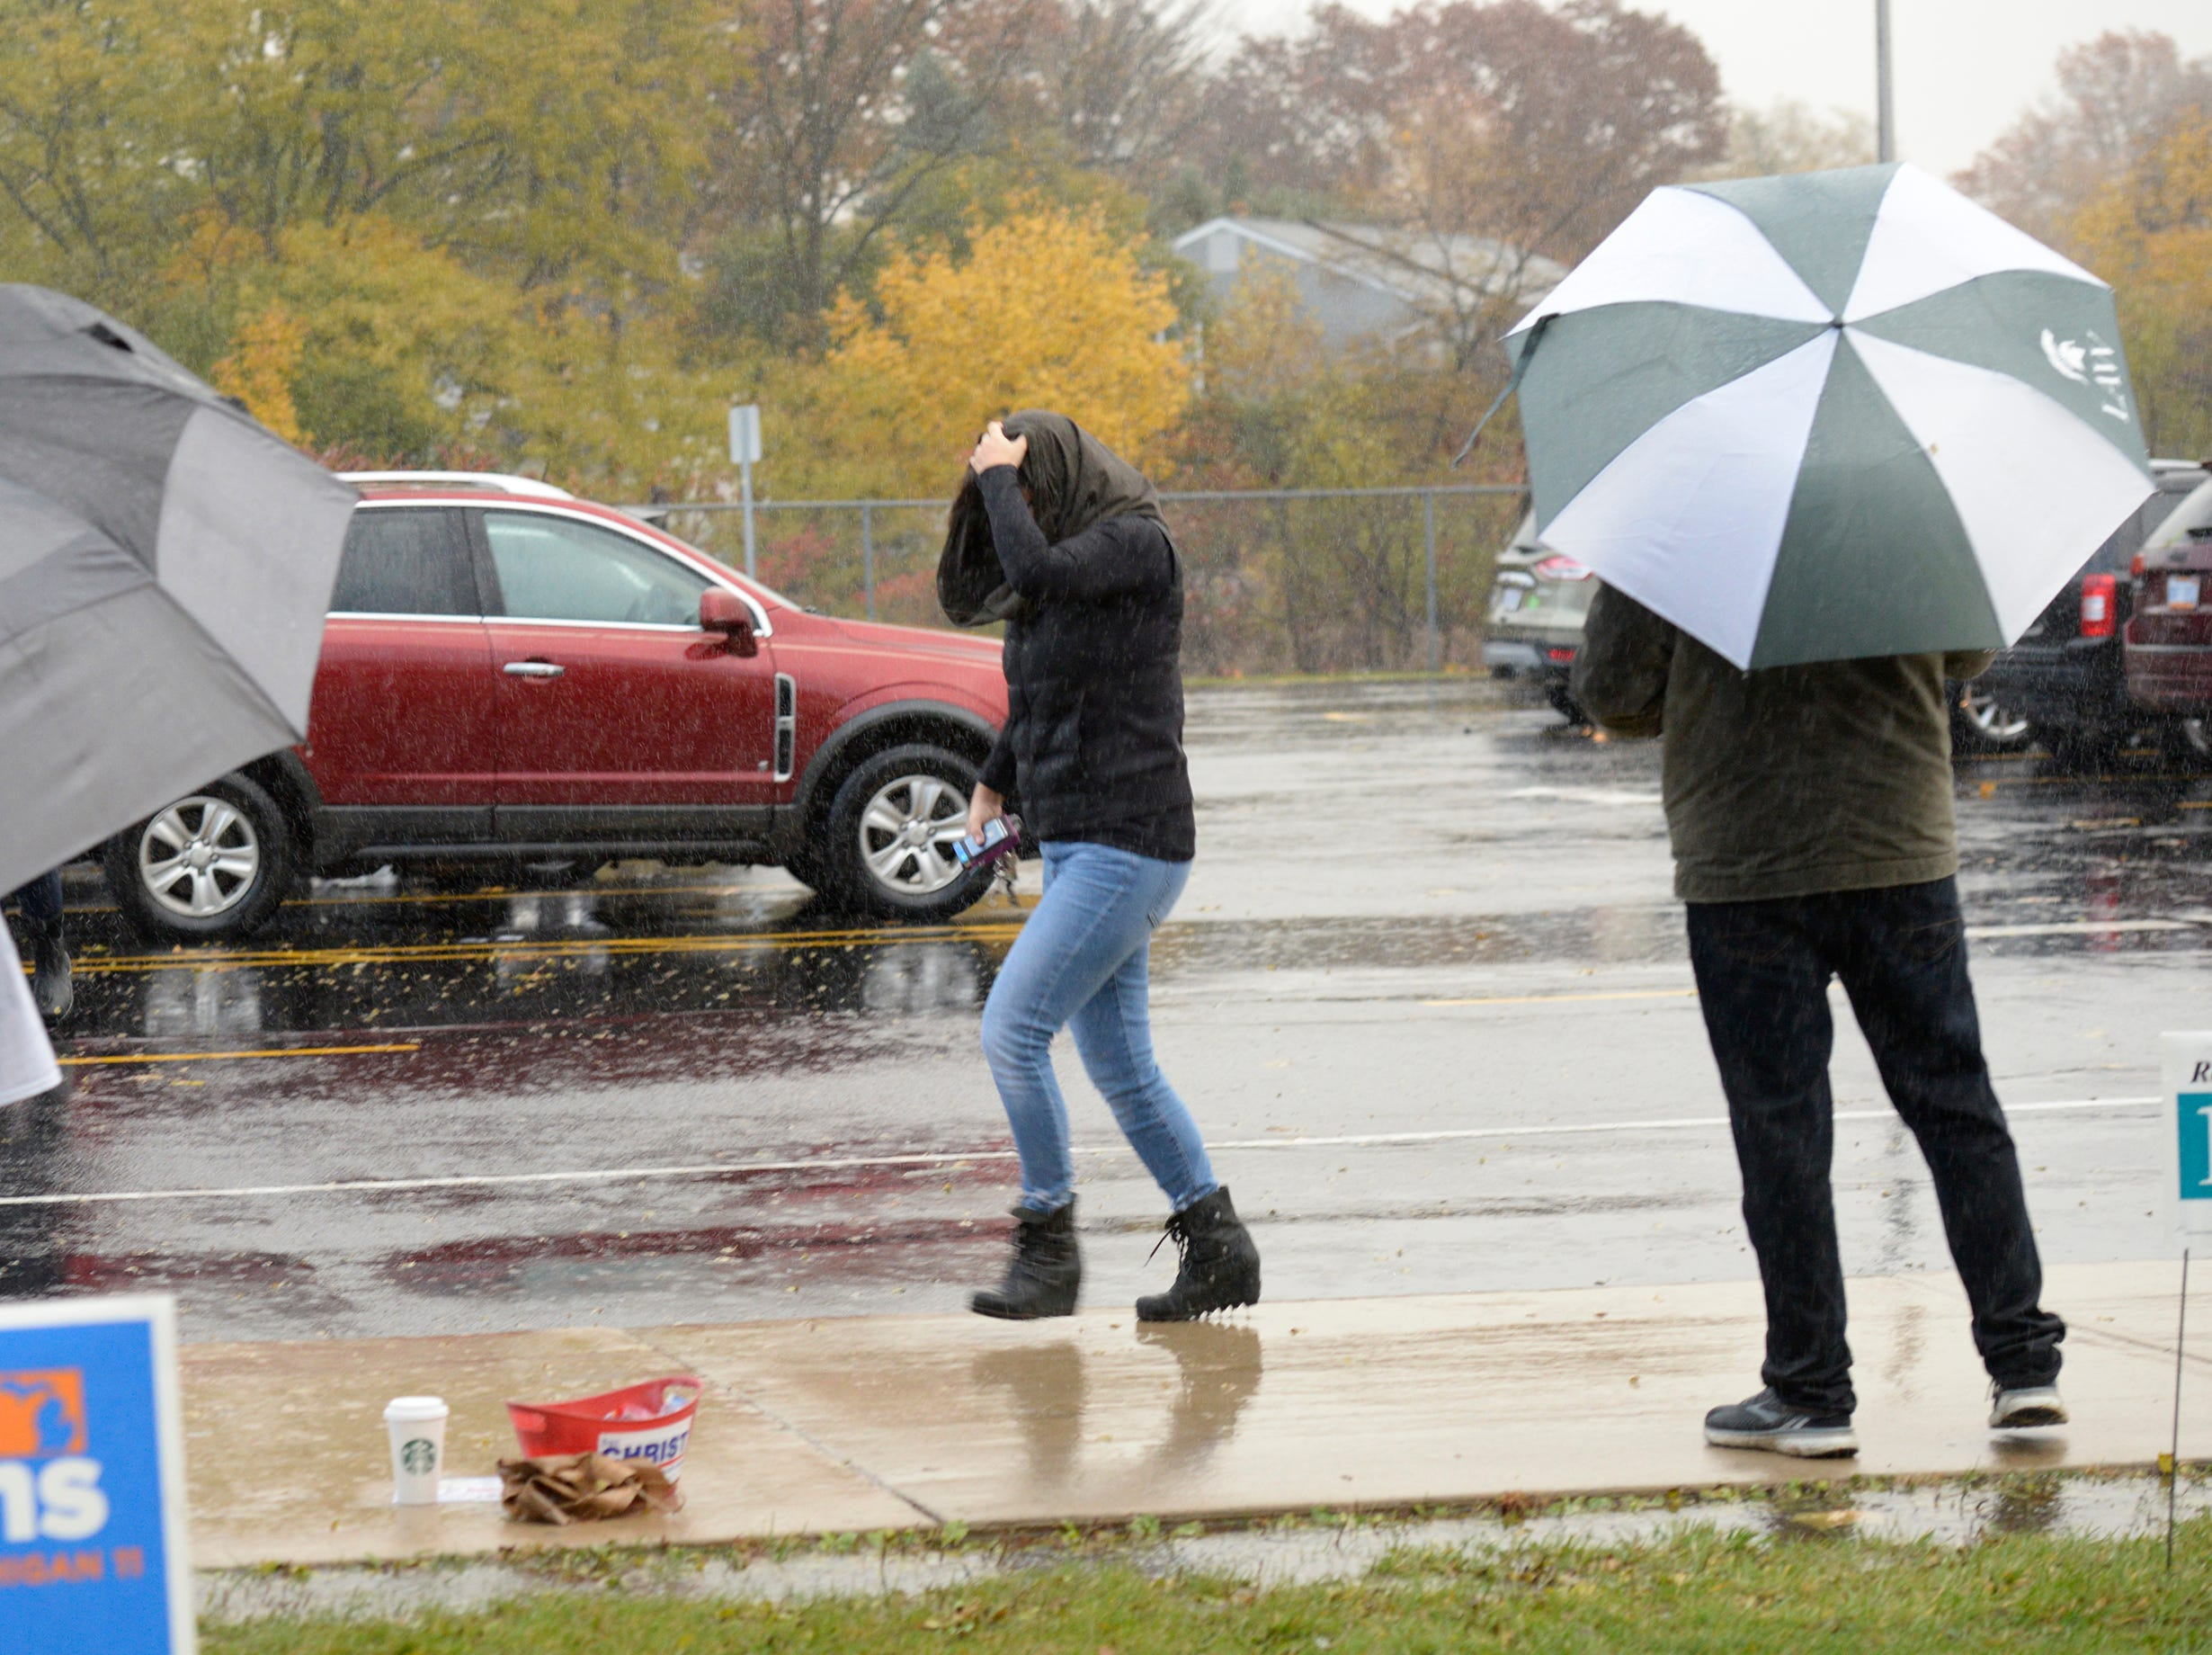 Voters dodge rain drips at Derby Middle School in Birmingham early on election day Nov. 6, 2018.